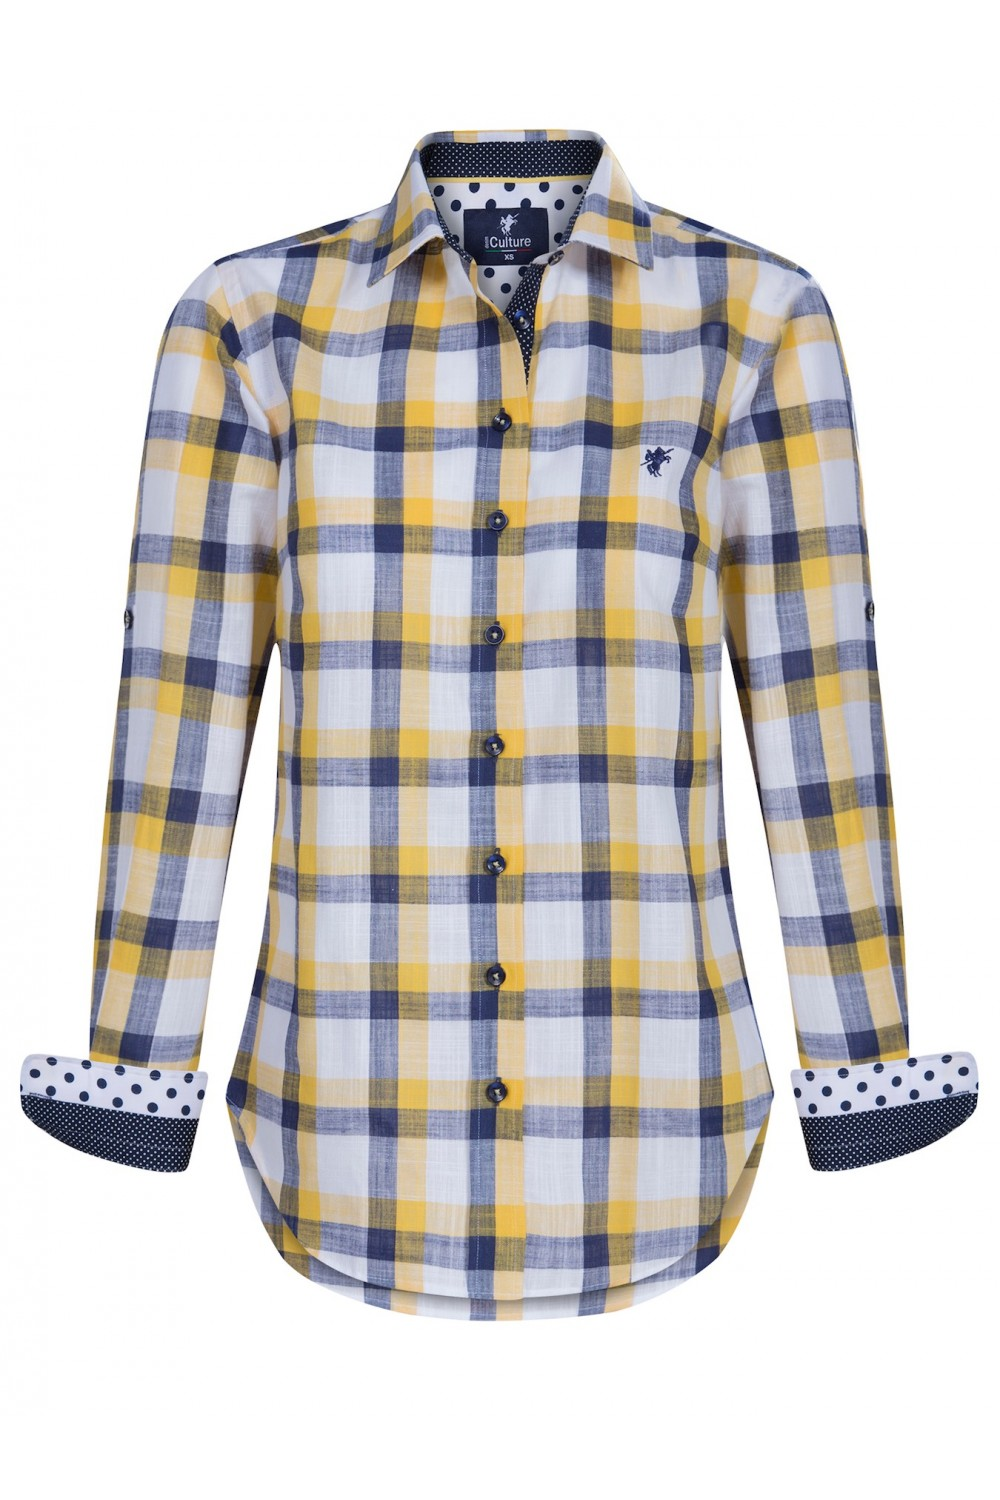 Women's Blouse Yellow Checked Cotton